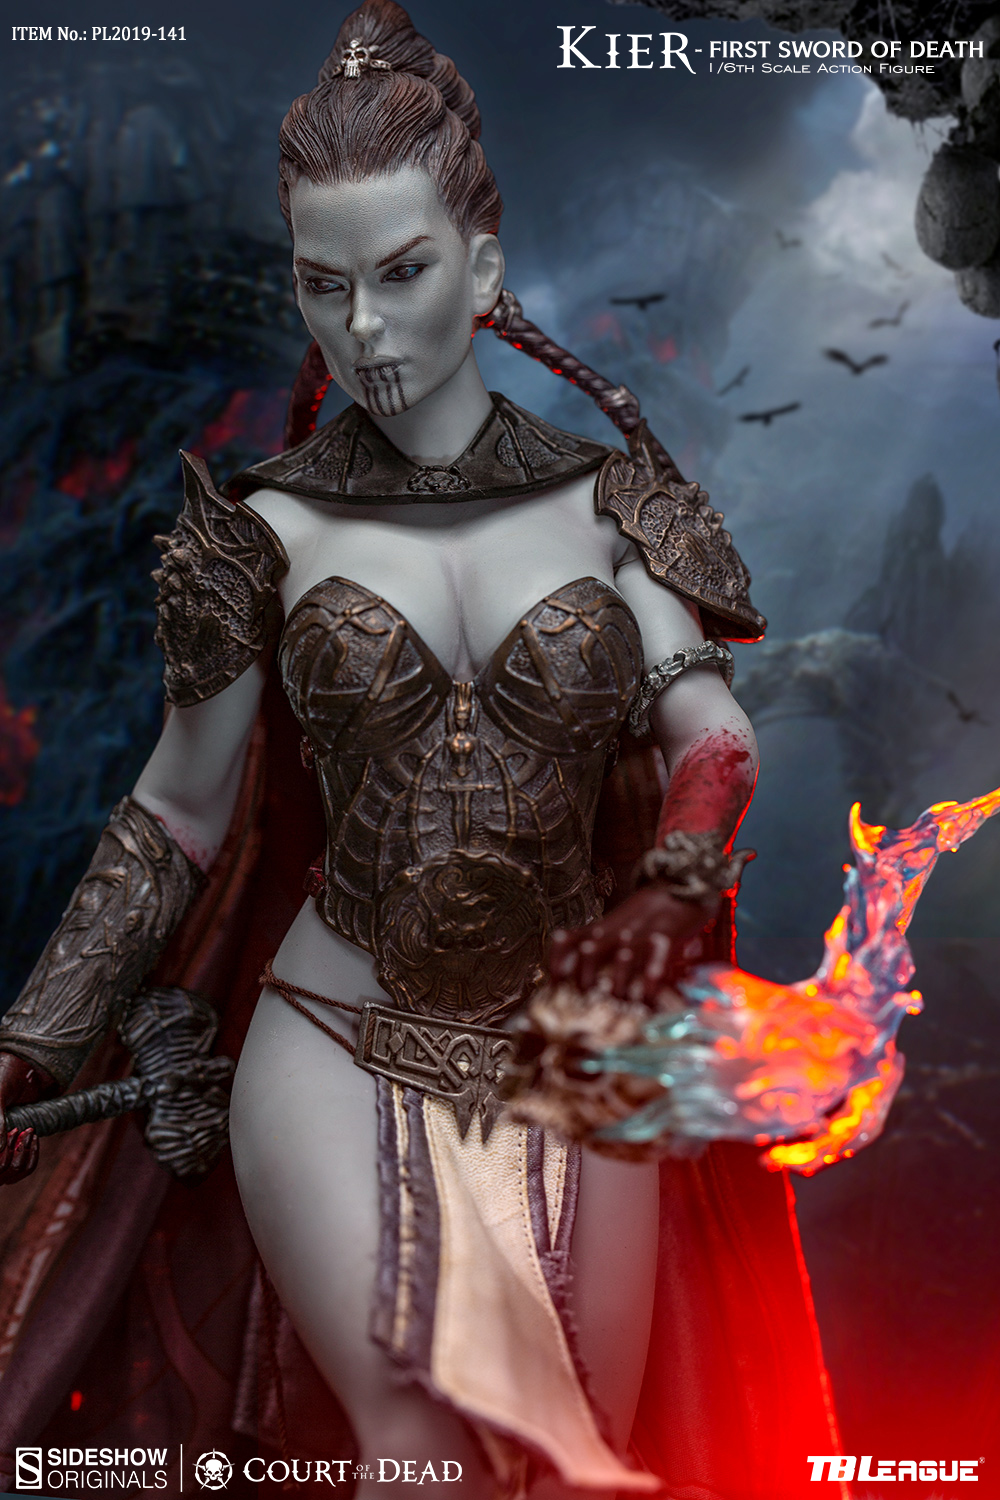 tbleague - NEW PRODUCT: TBLeague & Sideshow: 1/6 Court of the Dead - Valkyrie Cole / Kier movable doll (PL2019-141) 16260911